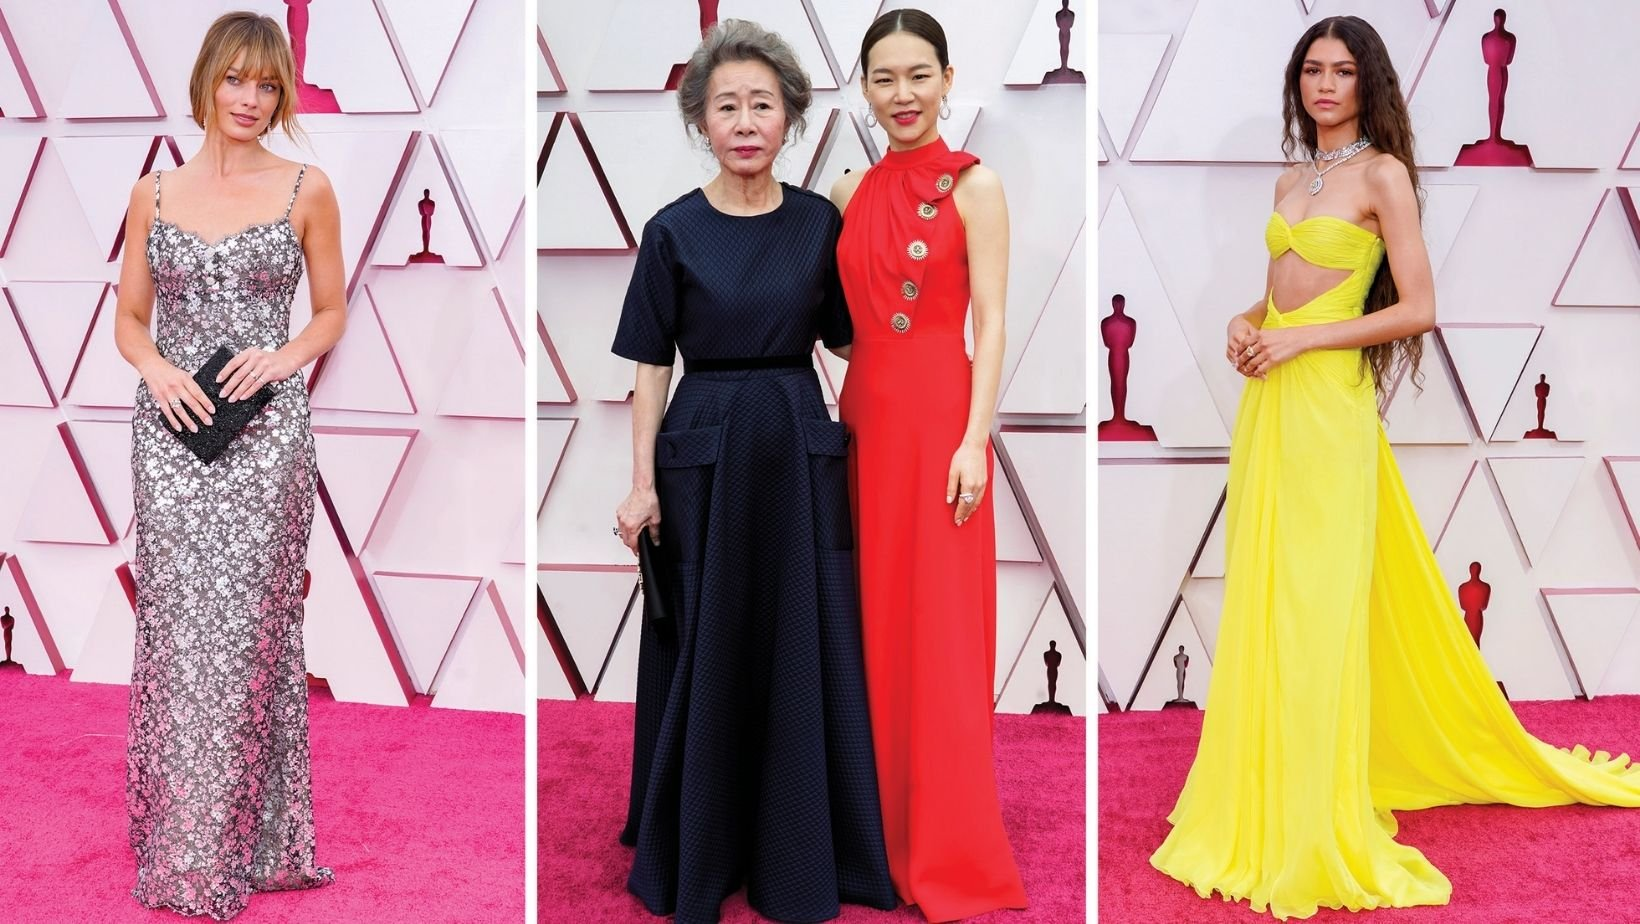 small joys thumbnail 7.jpg?resize=412,232 - The Top Best-Dressed Celebrities In The Socially-Distanced 2021 Academy Awards